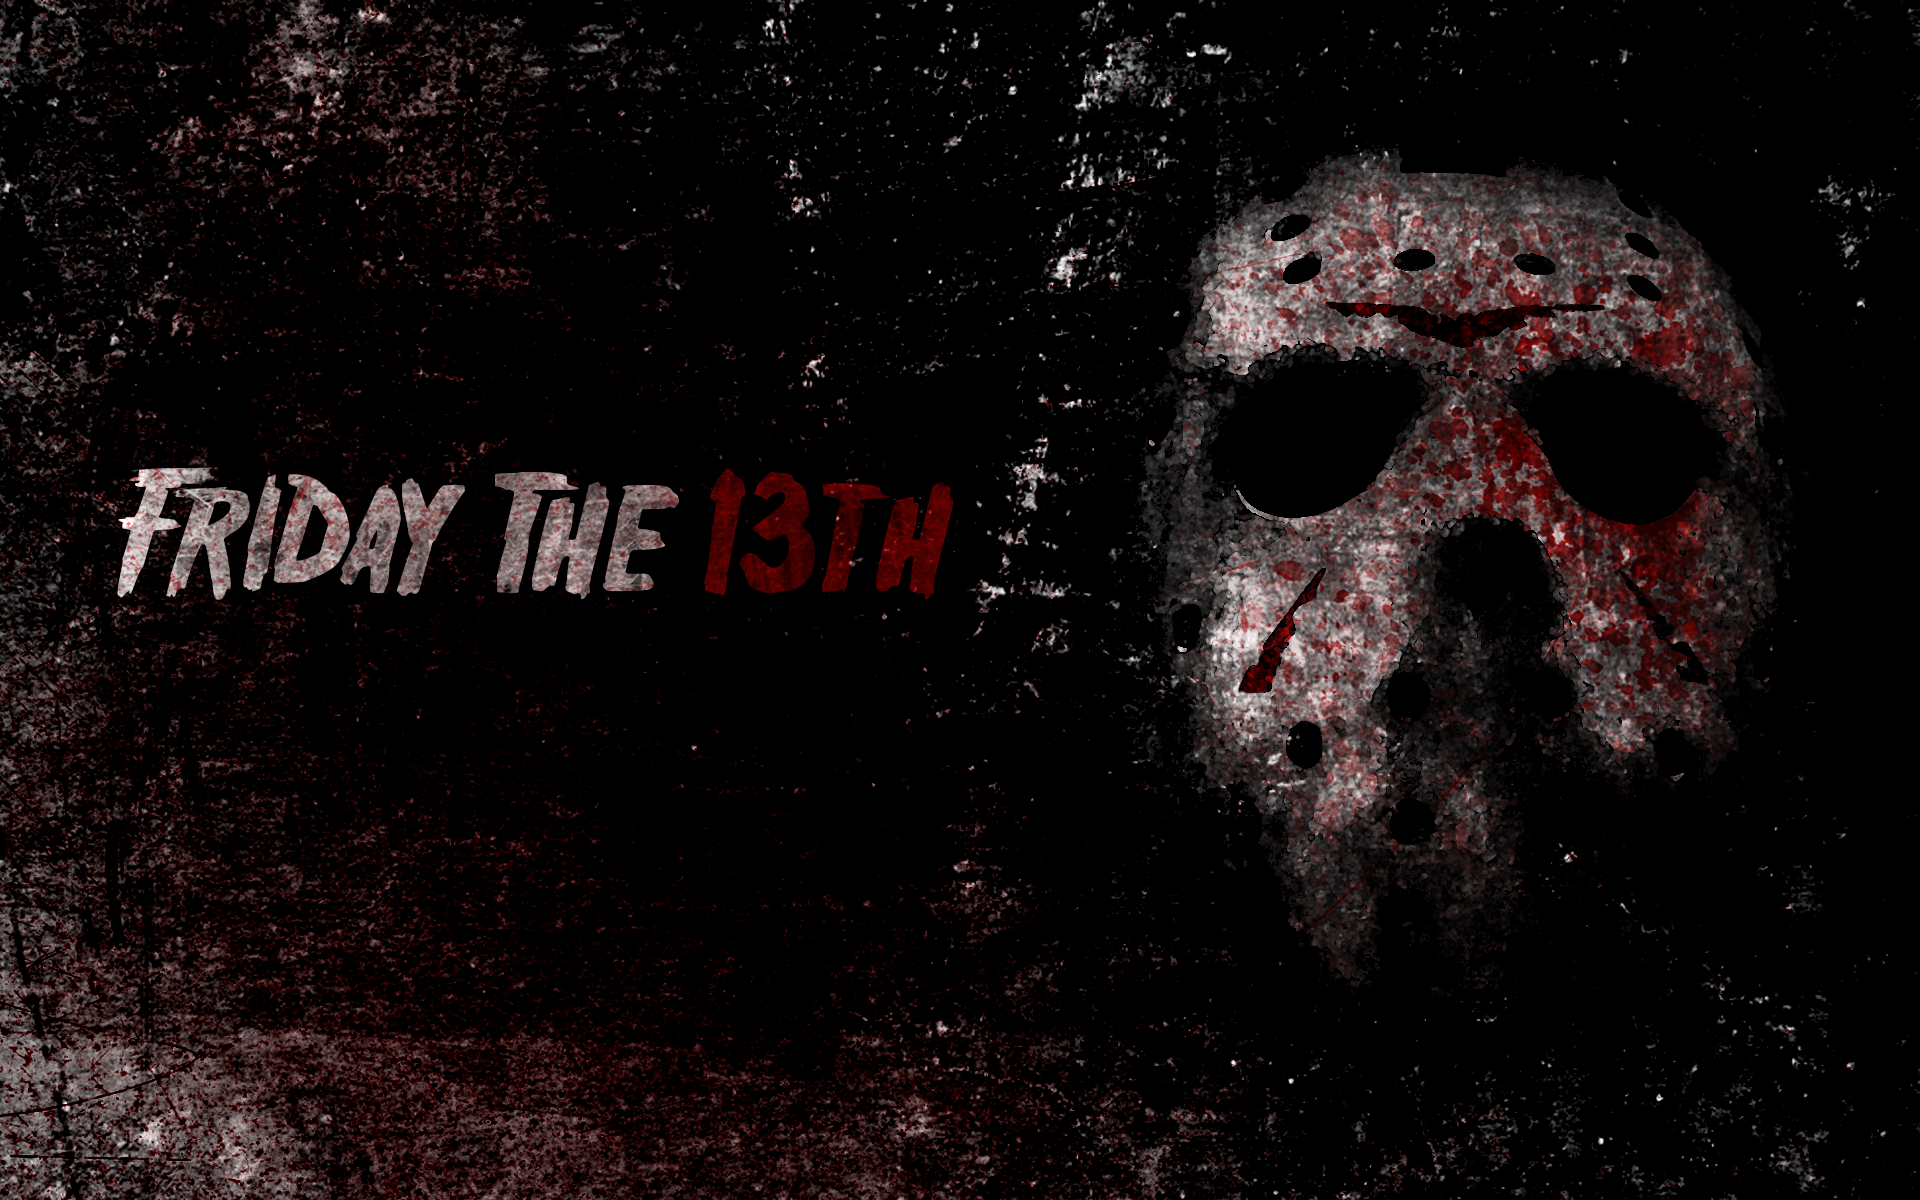 Friday The 13th The Game Wallpaper: Friday 13 Wallpaper